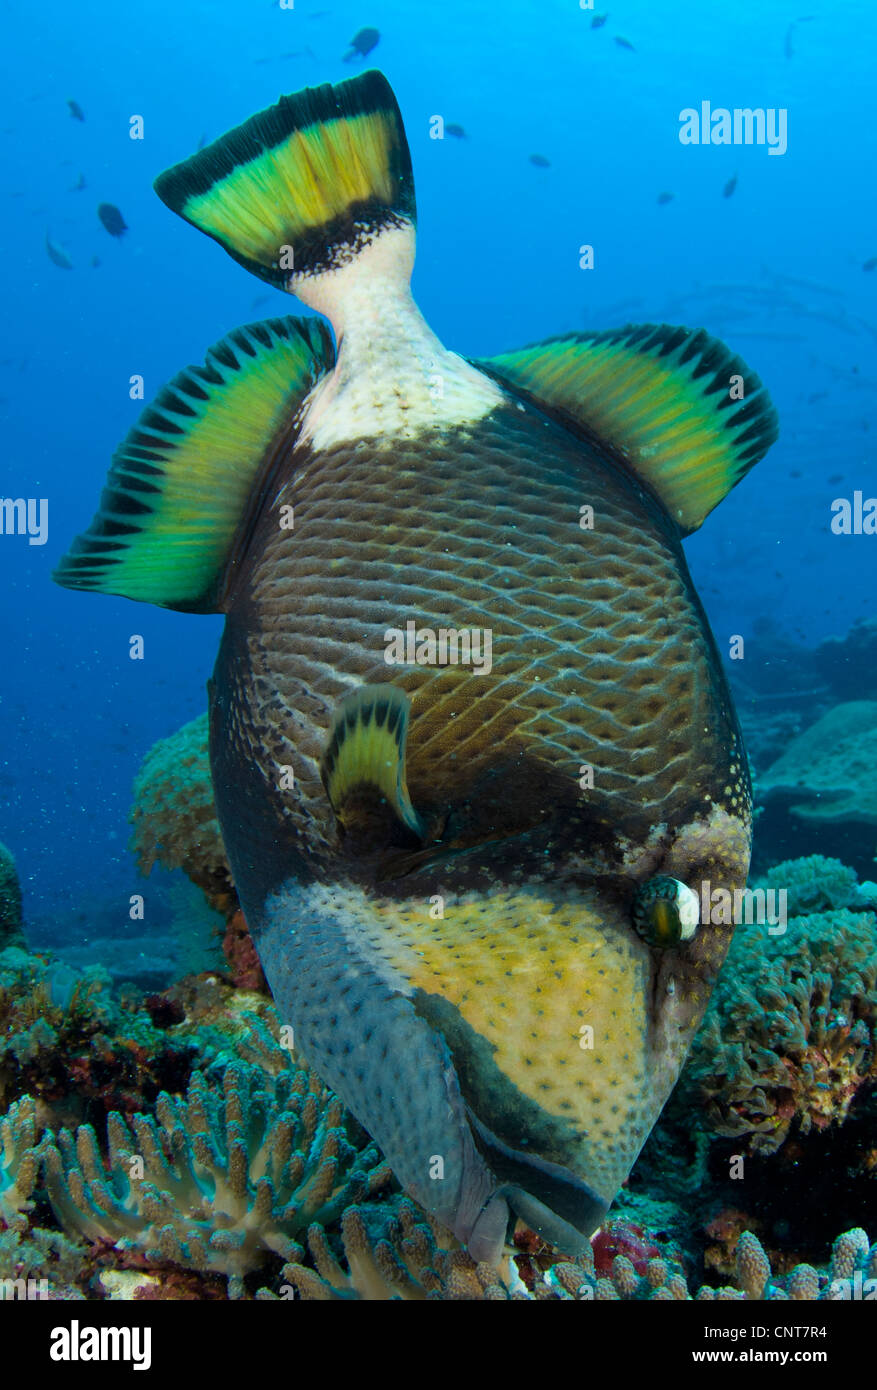 Titan triggerfish (Balistoides viridescens) close-up full body view as it picks at coral, Solomon Islands. - Stock Image